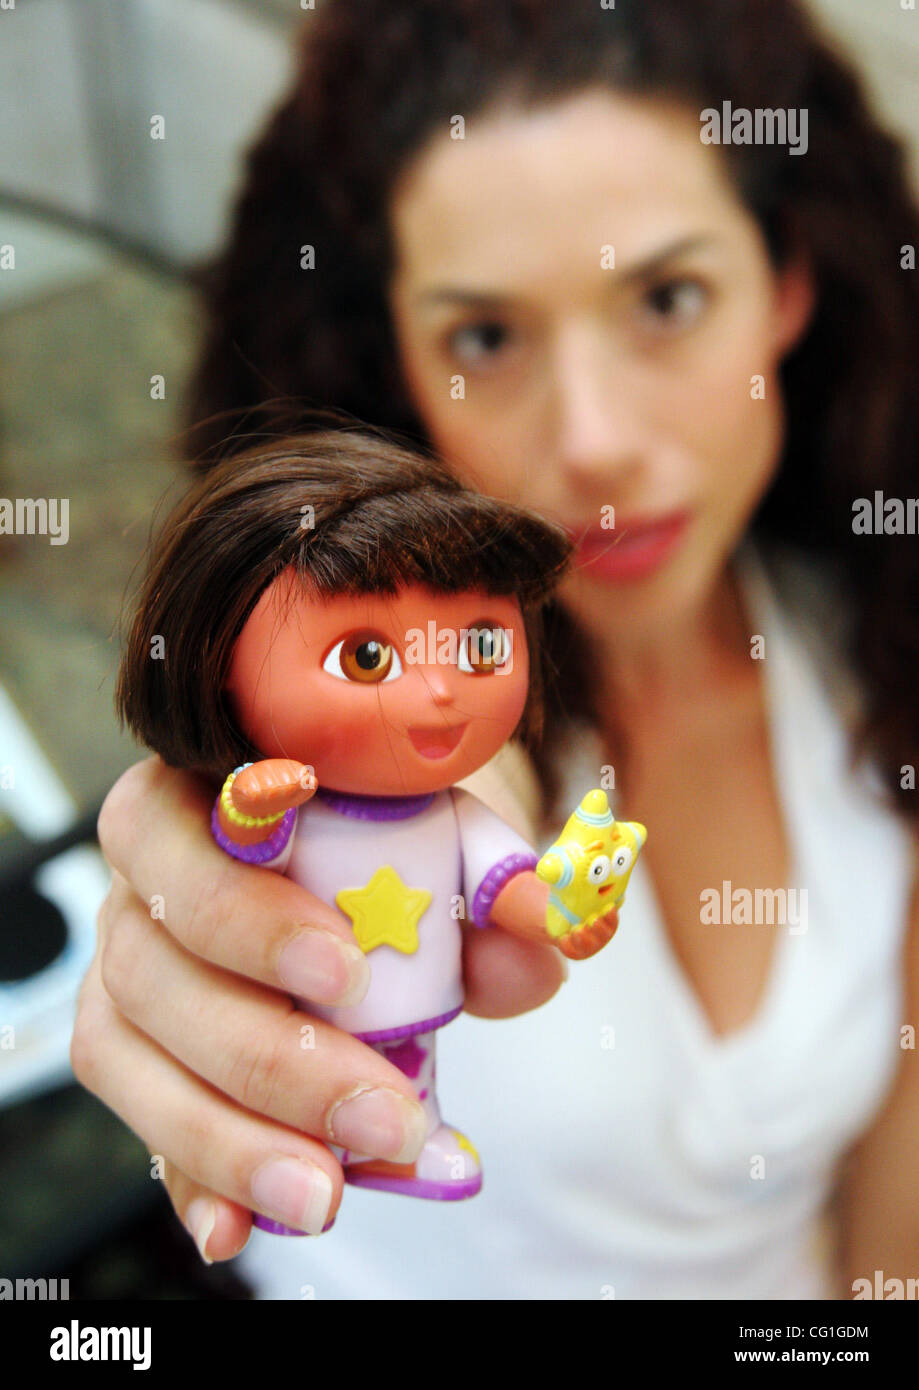 August 14th 2007 - Danville, CA, USA -  Mattel recalled 9 million Chinese-made toys Tuesday, including Polly Pockets Stock Photo